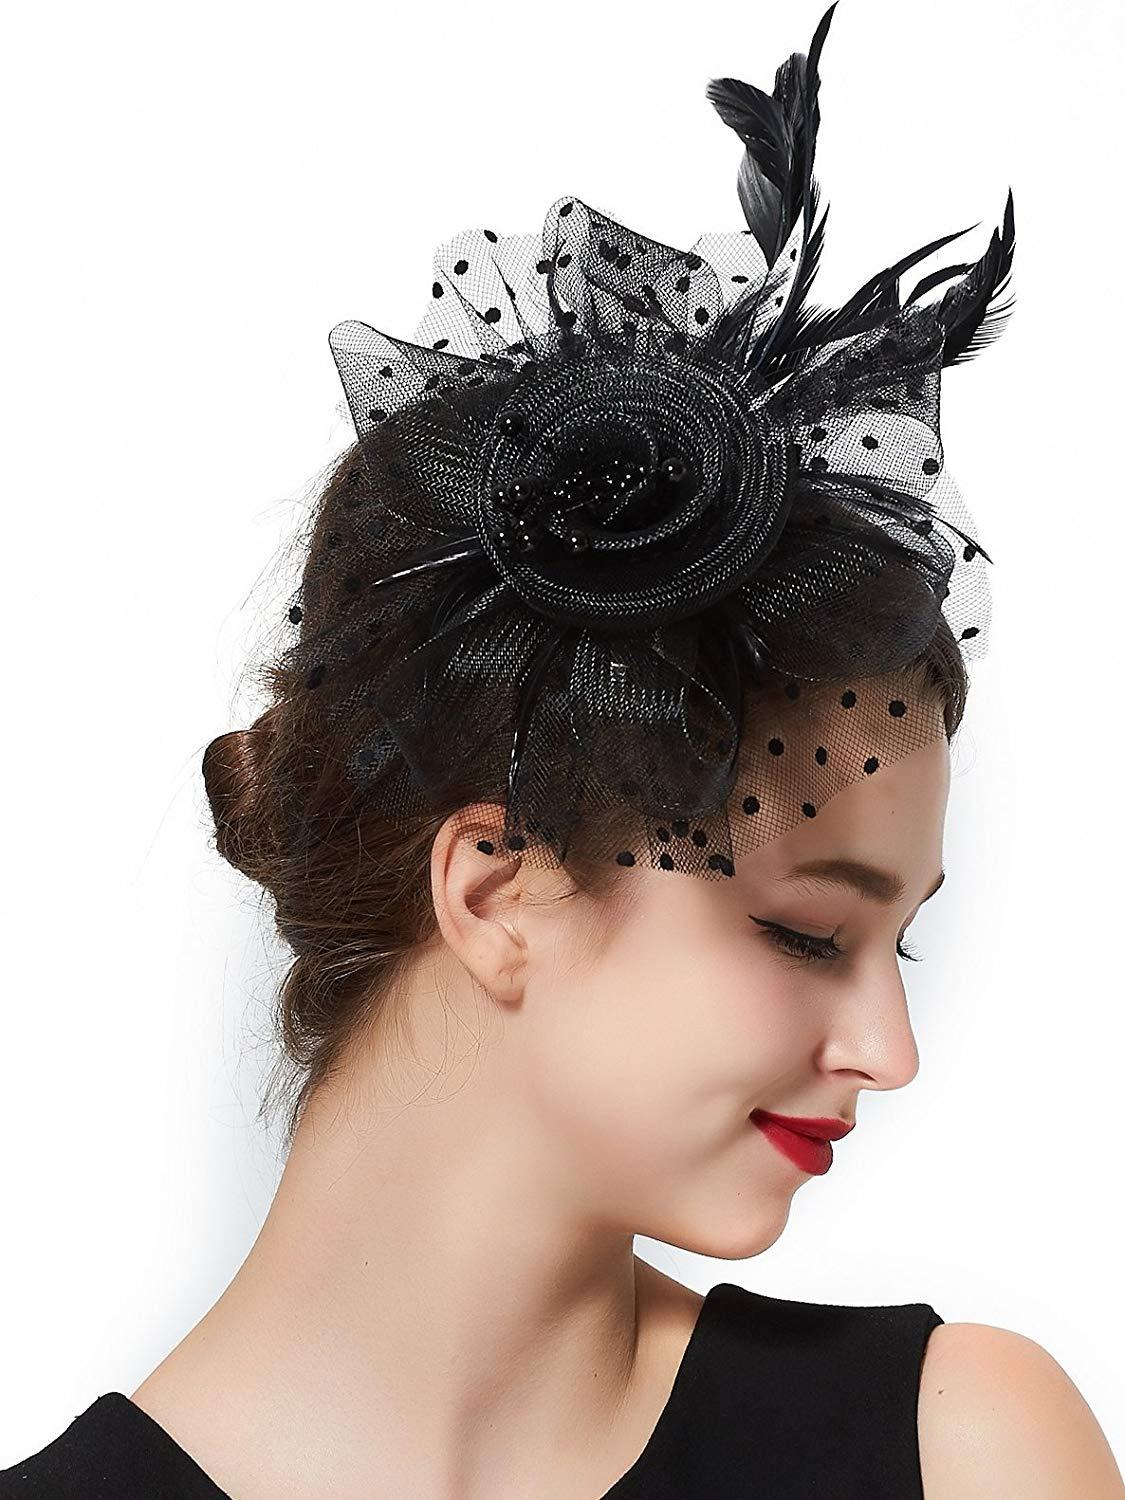 d98f39bb58f12 Fascinators For Women Tea Party Headband Hat Kentucky Derby Wedding  Headpiece Cocktail Flower Mesh Feathers Hair Clip 1920s Lady Accessories UK  2019 From ...